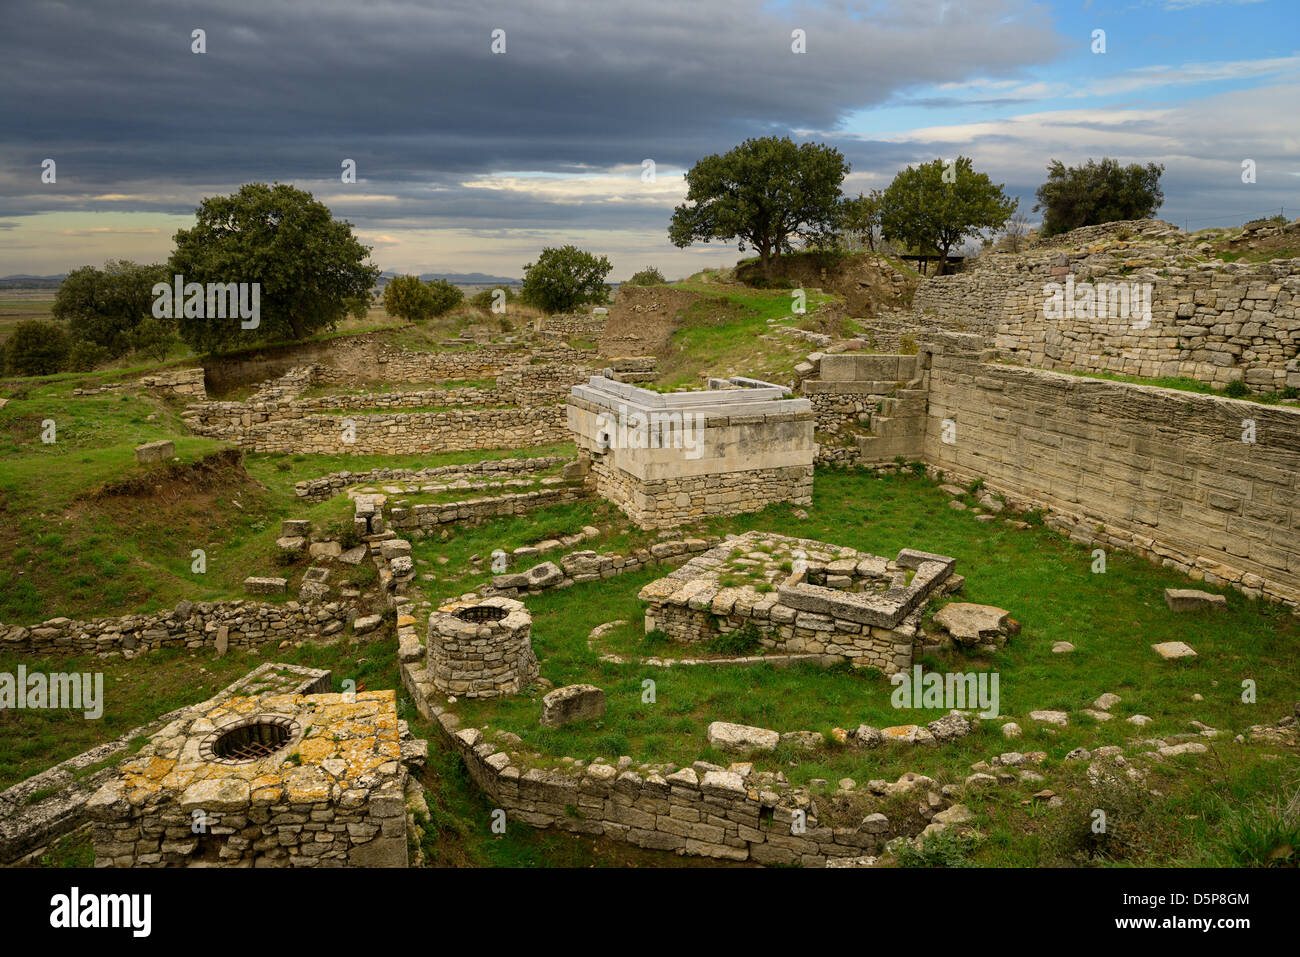 Sanctuary walls and wells of Troy VI at archeological site near Hisarlik Turkey - Stock Image